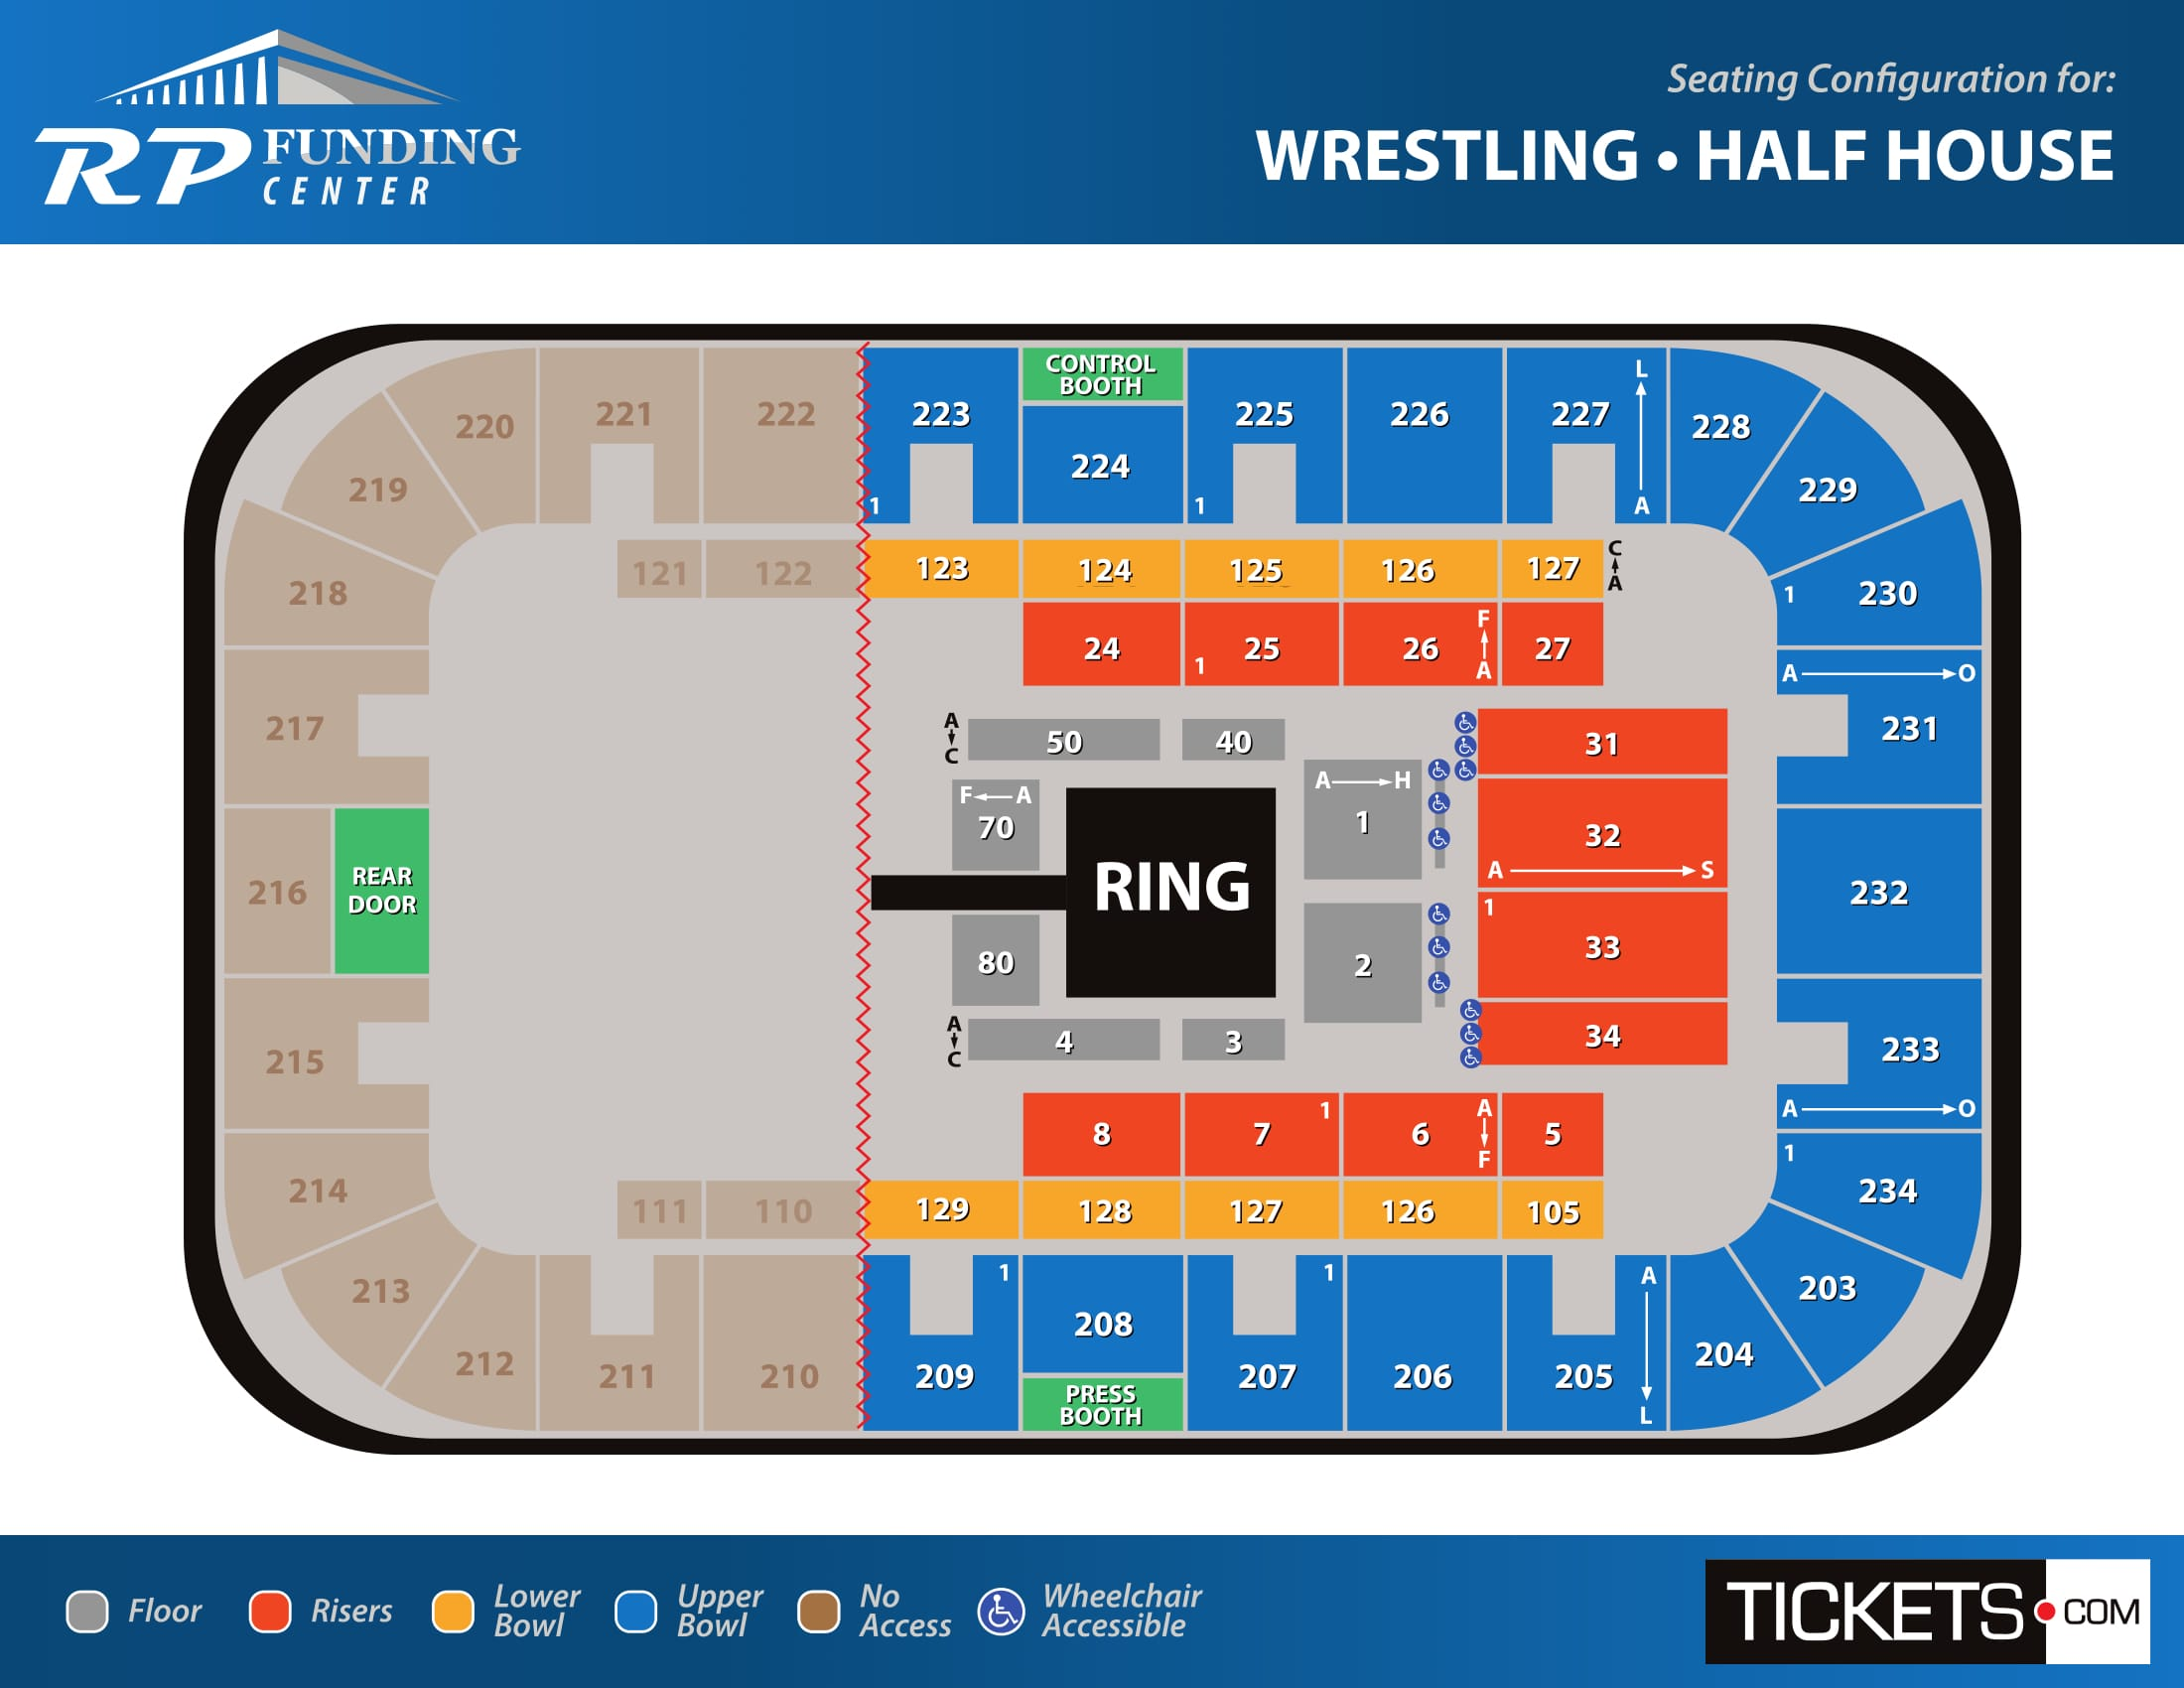 Wrestling - Half House seating map